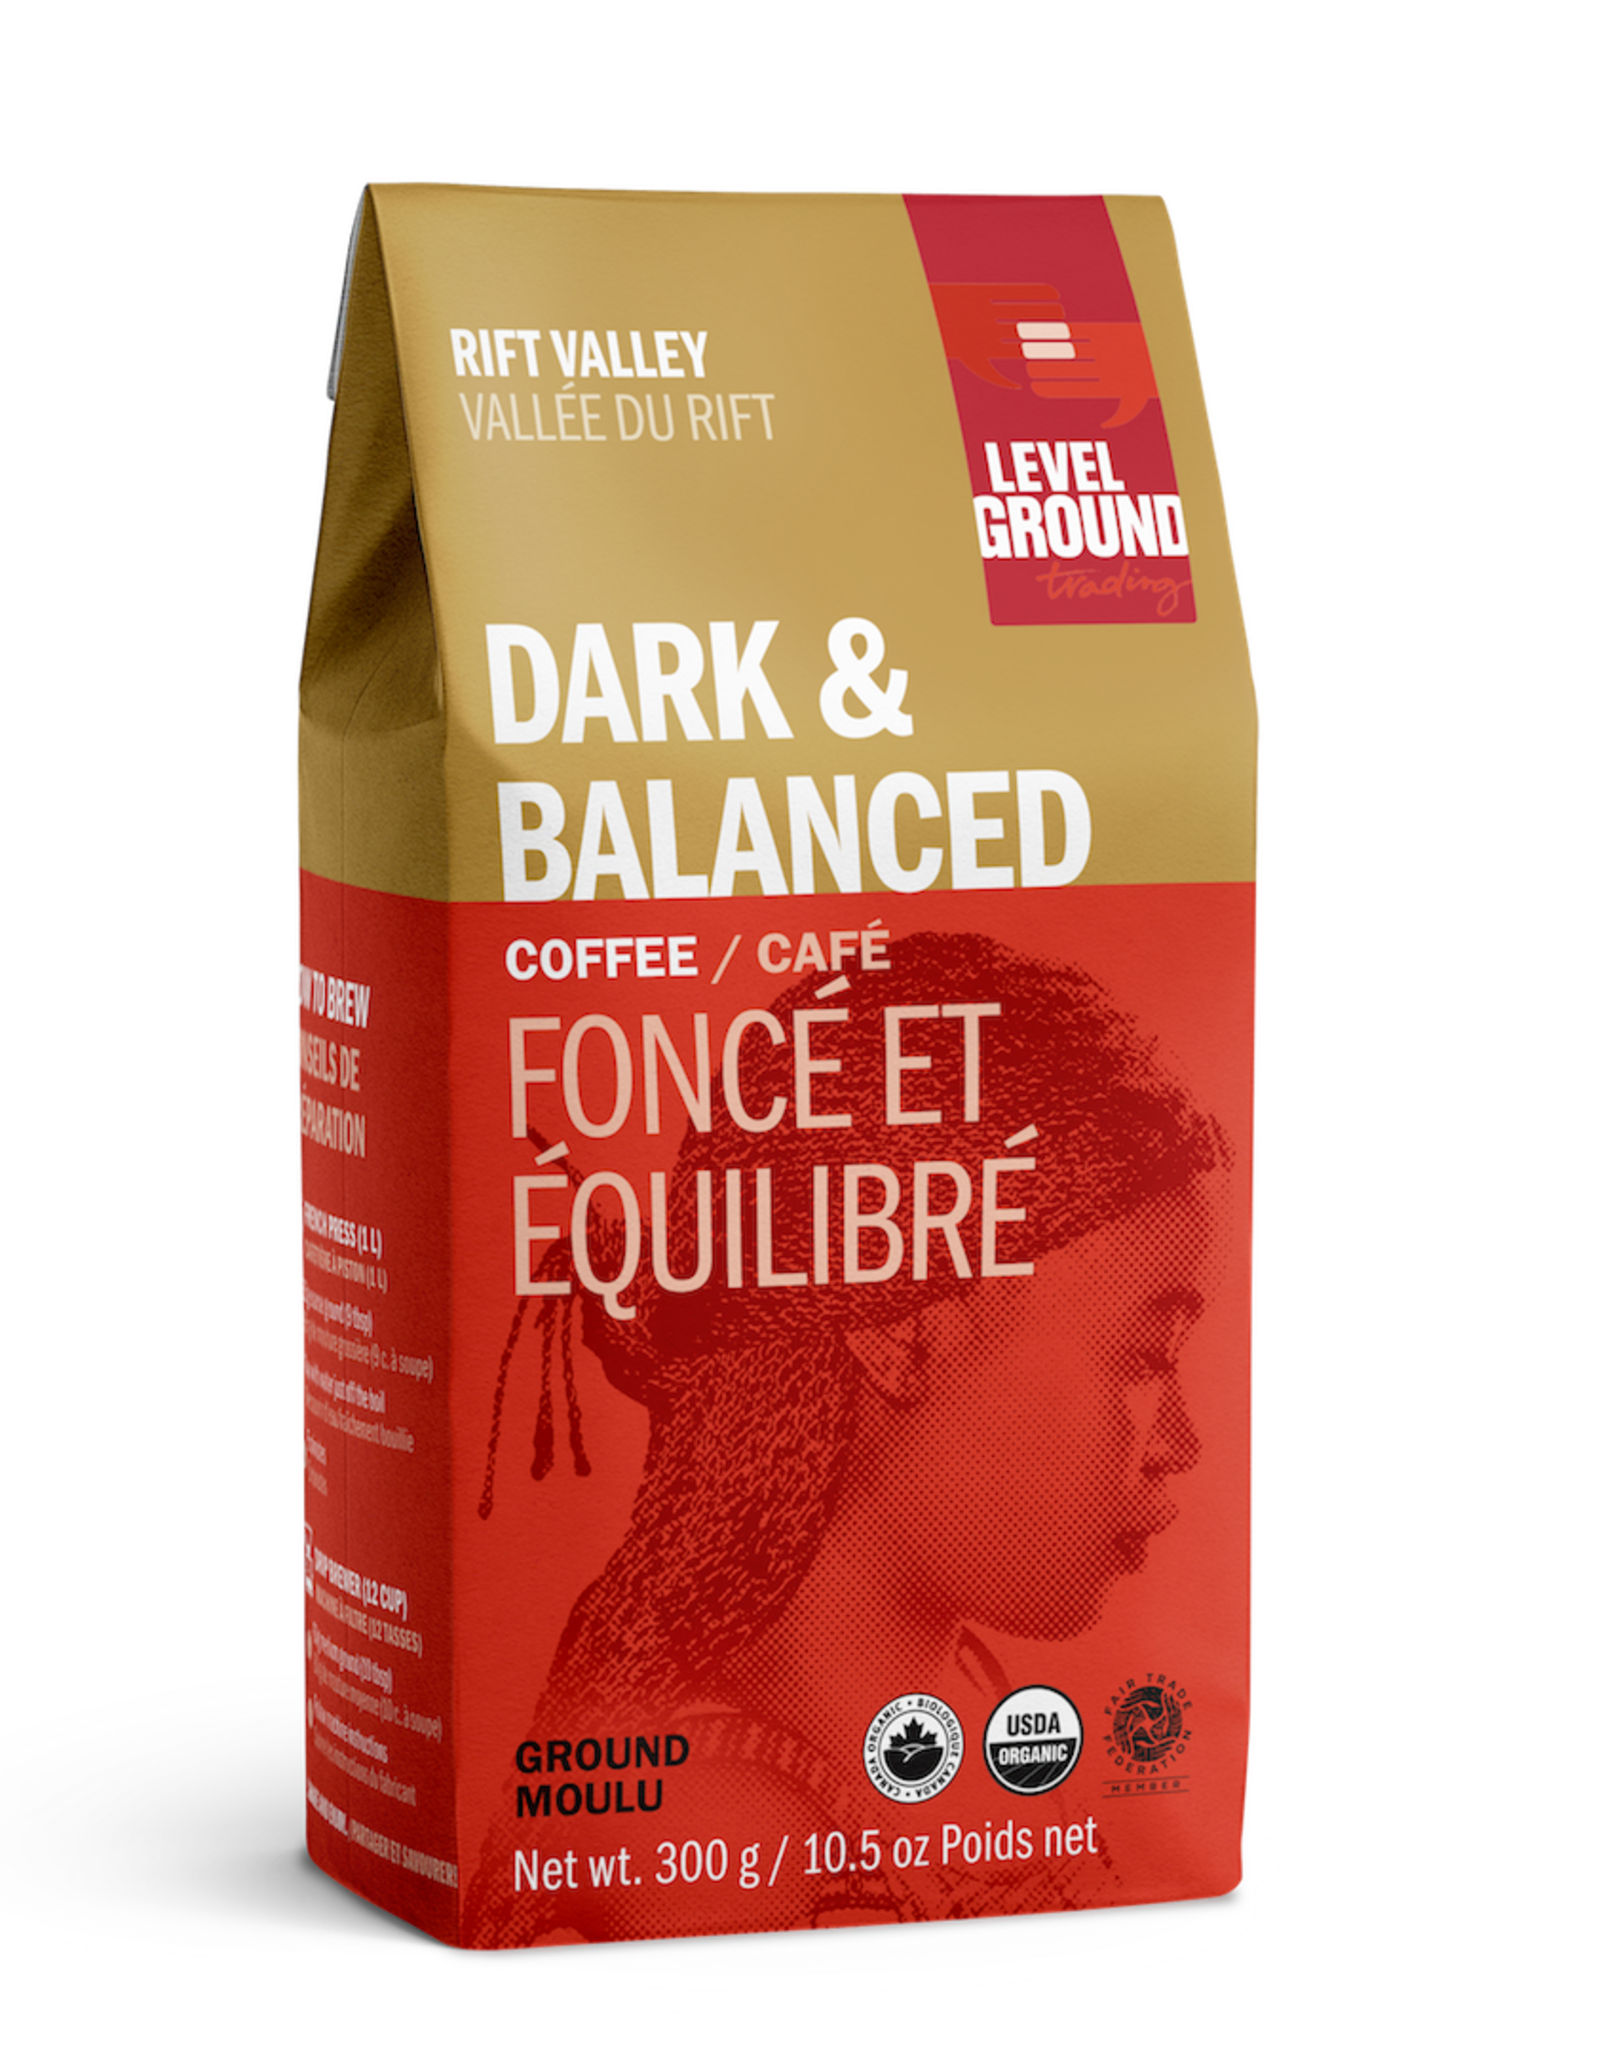 Level Ground Coffee, Rift Valley, Ground 300g